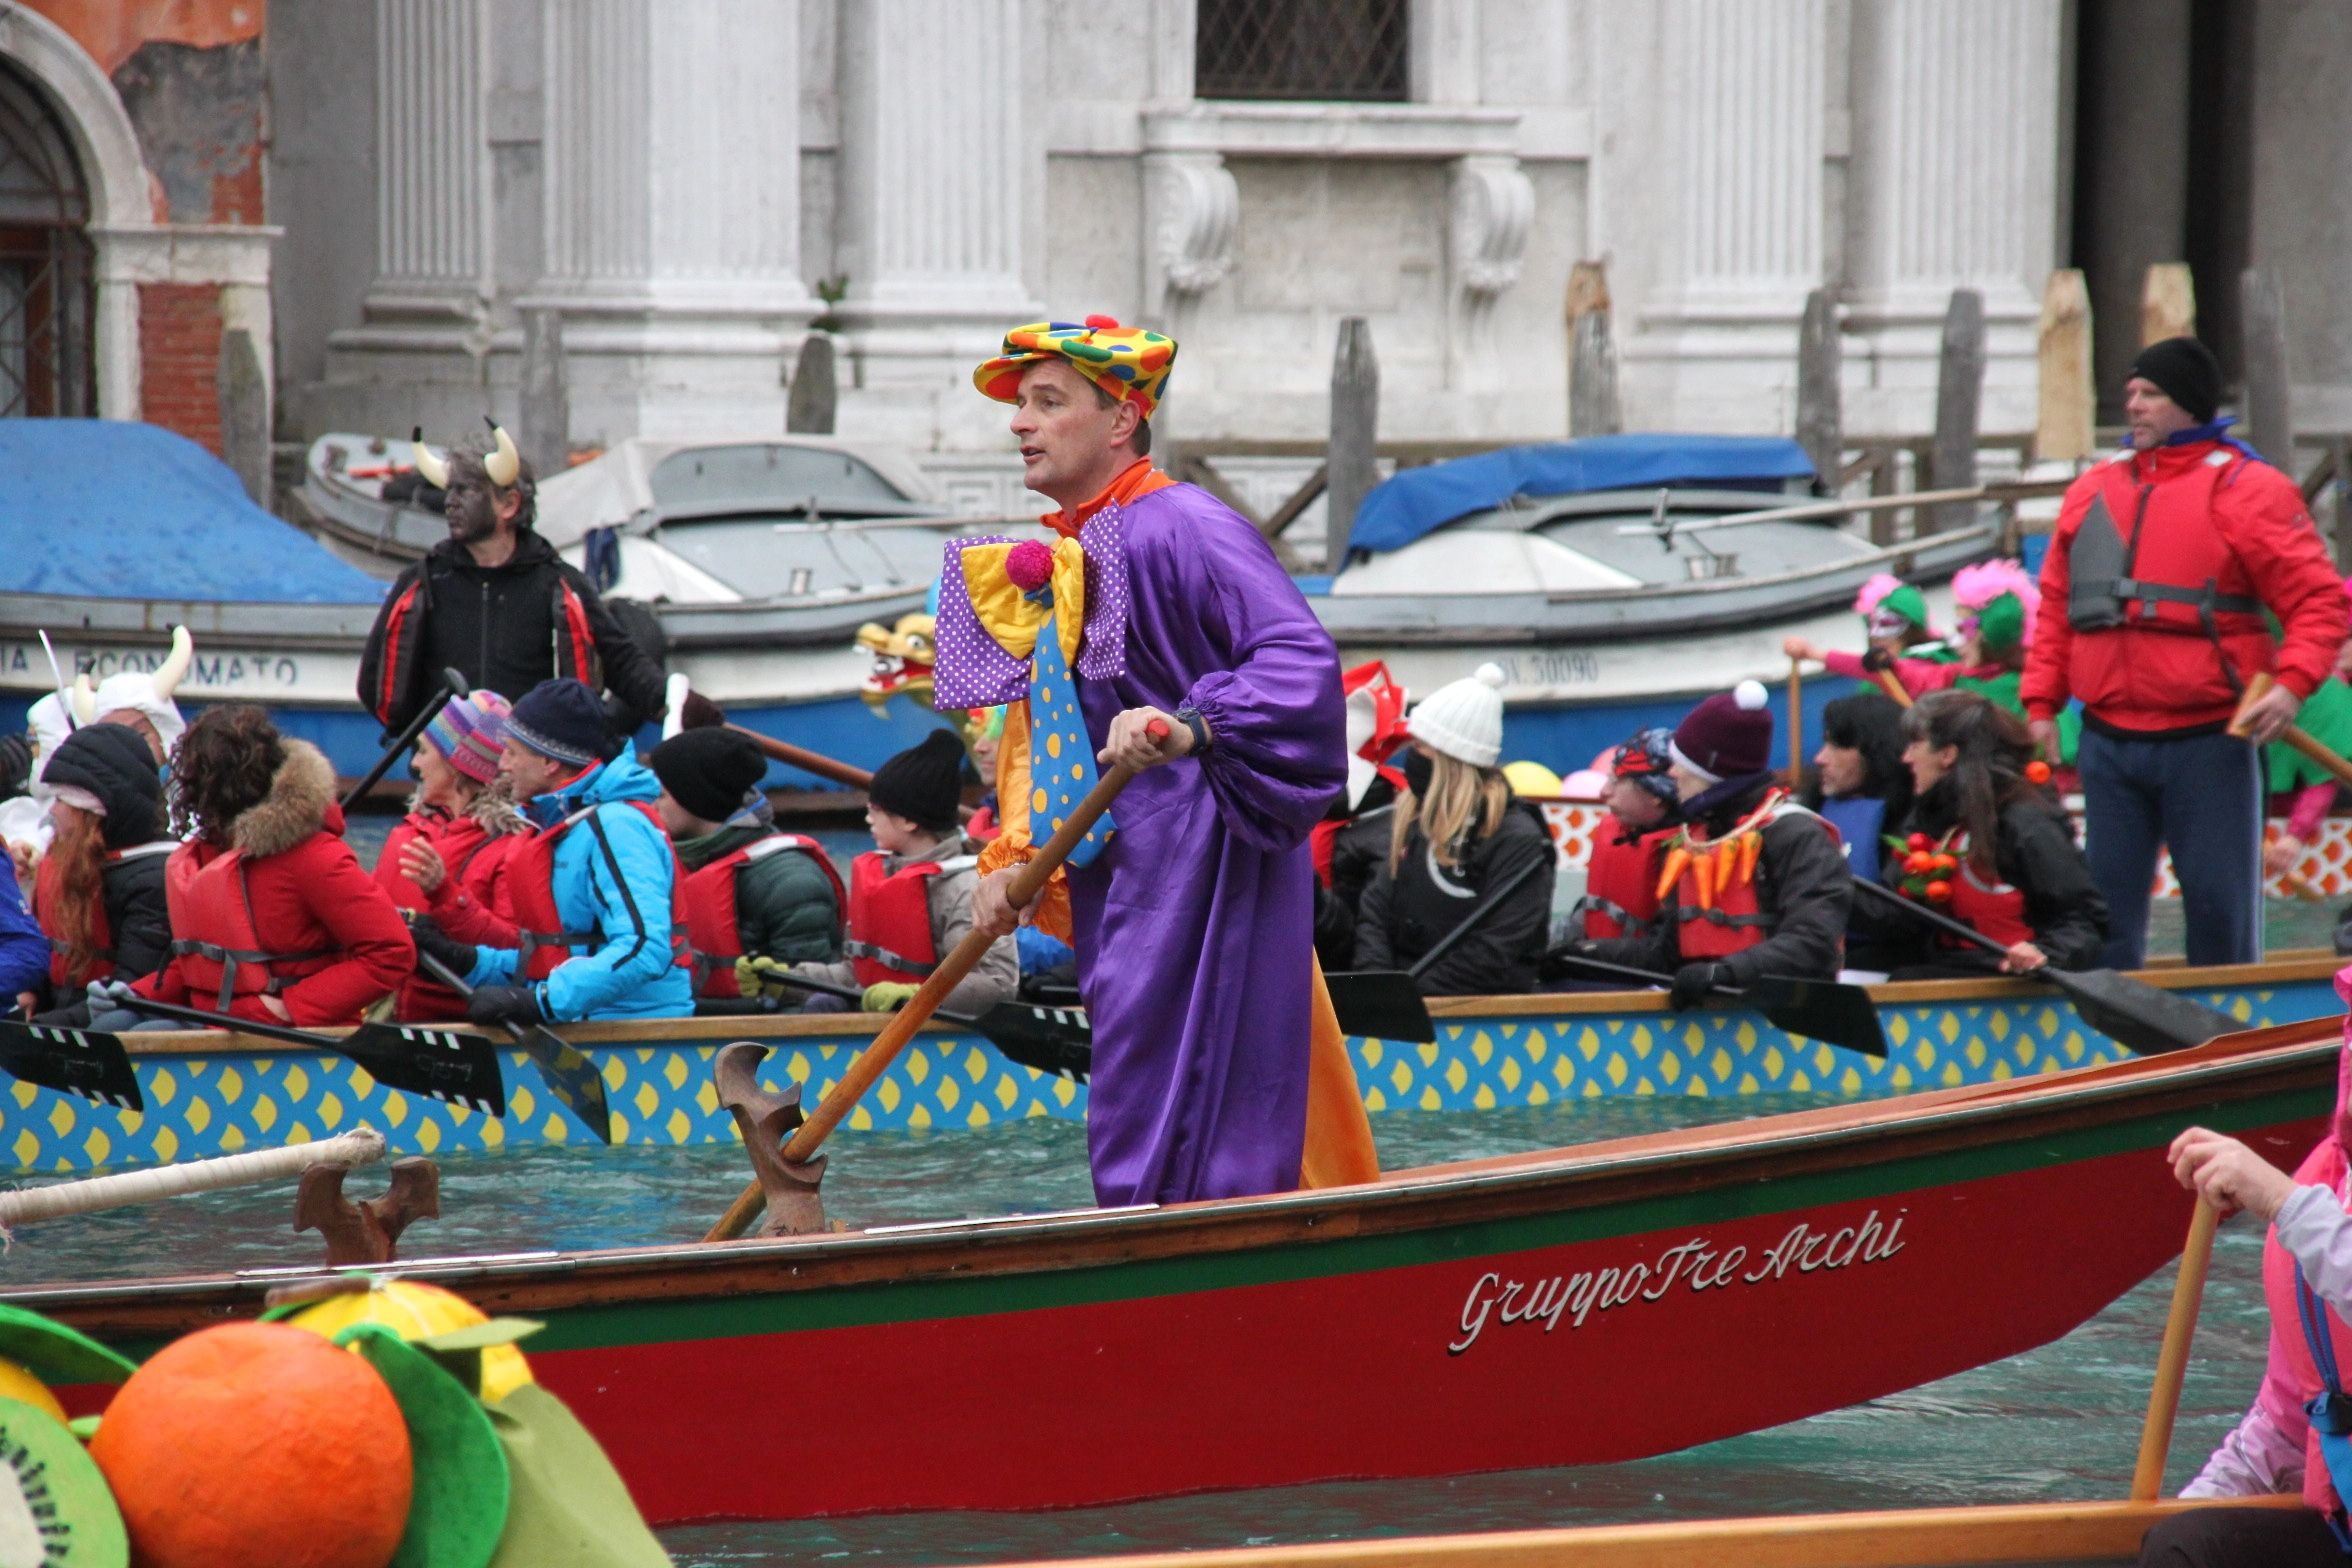 Venice Carnival Water Parade - A clown rows along the Grand Canal, Venice